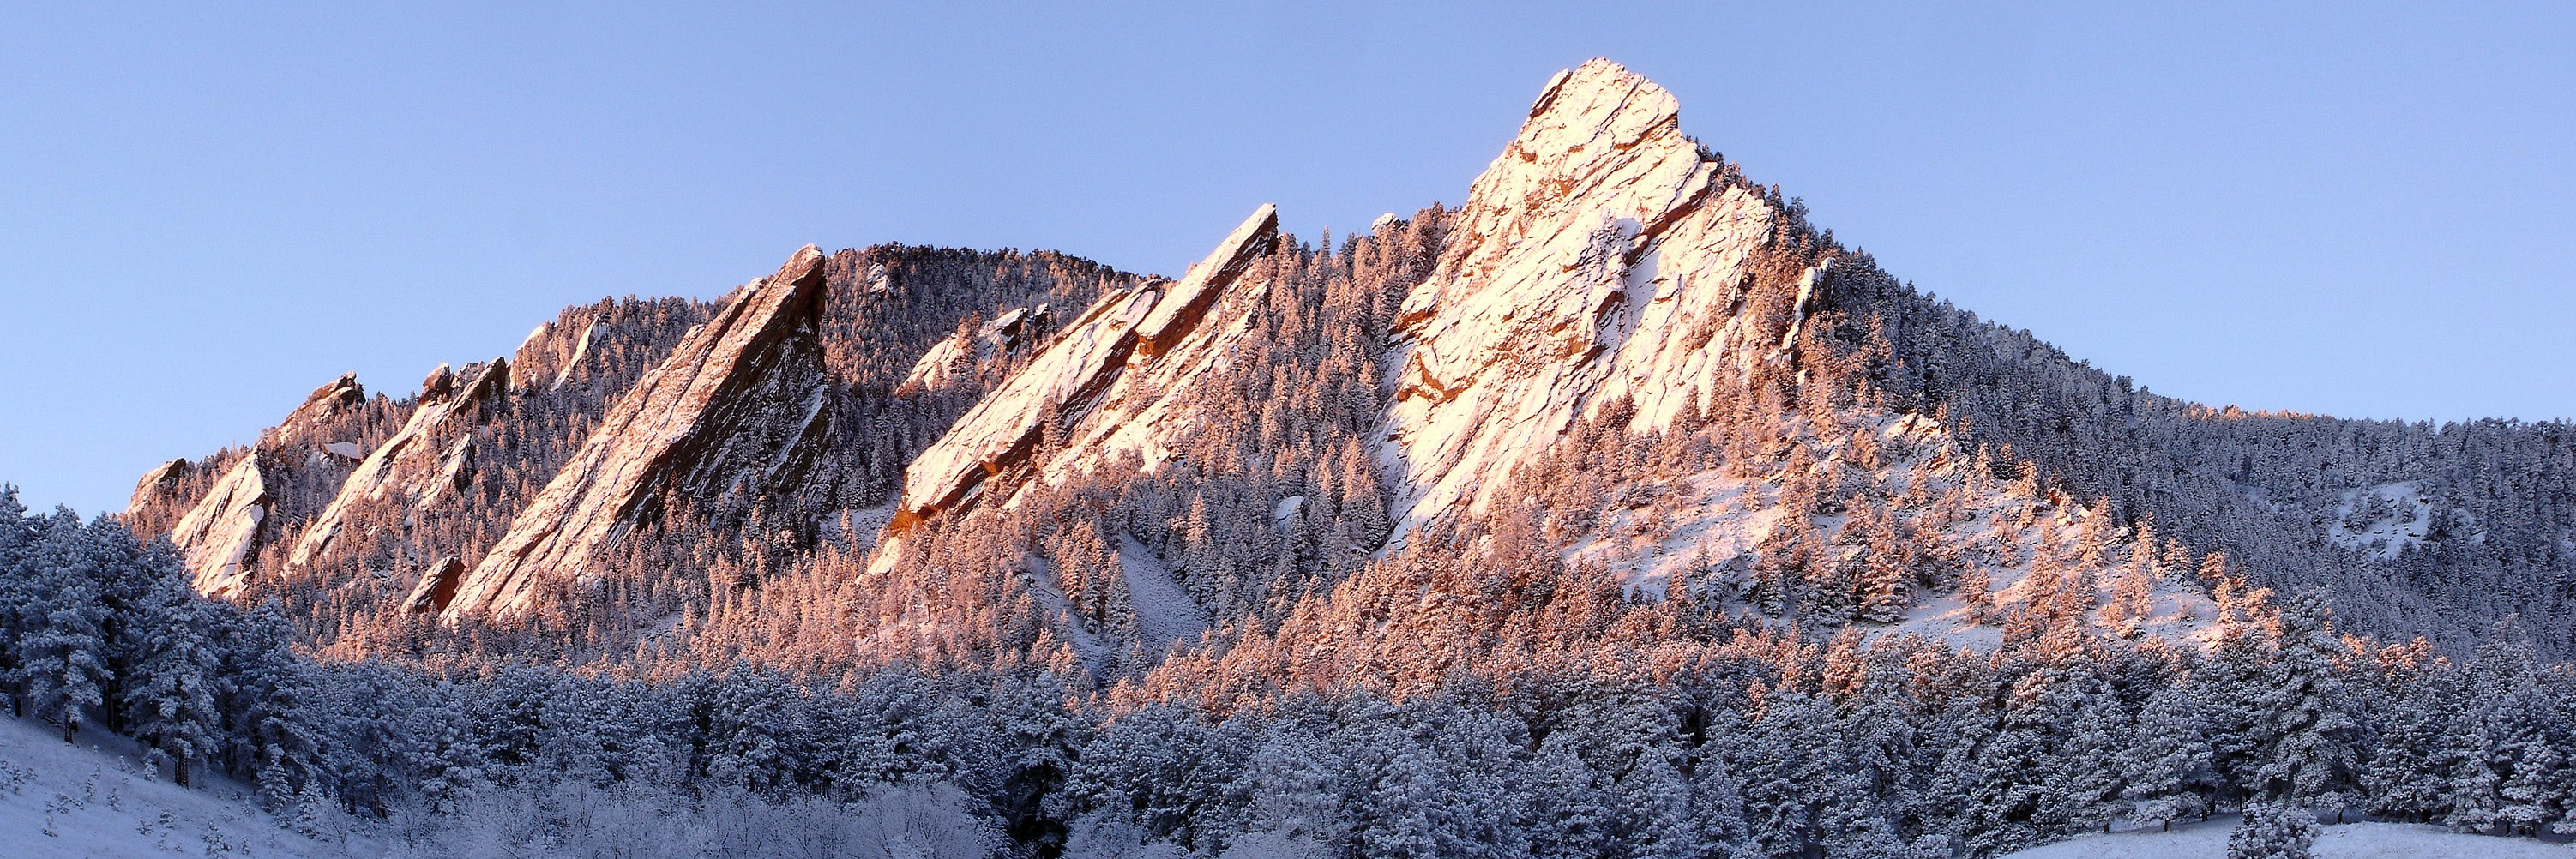 Flatirons_Winter_Sunrise_1 mg